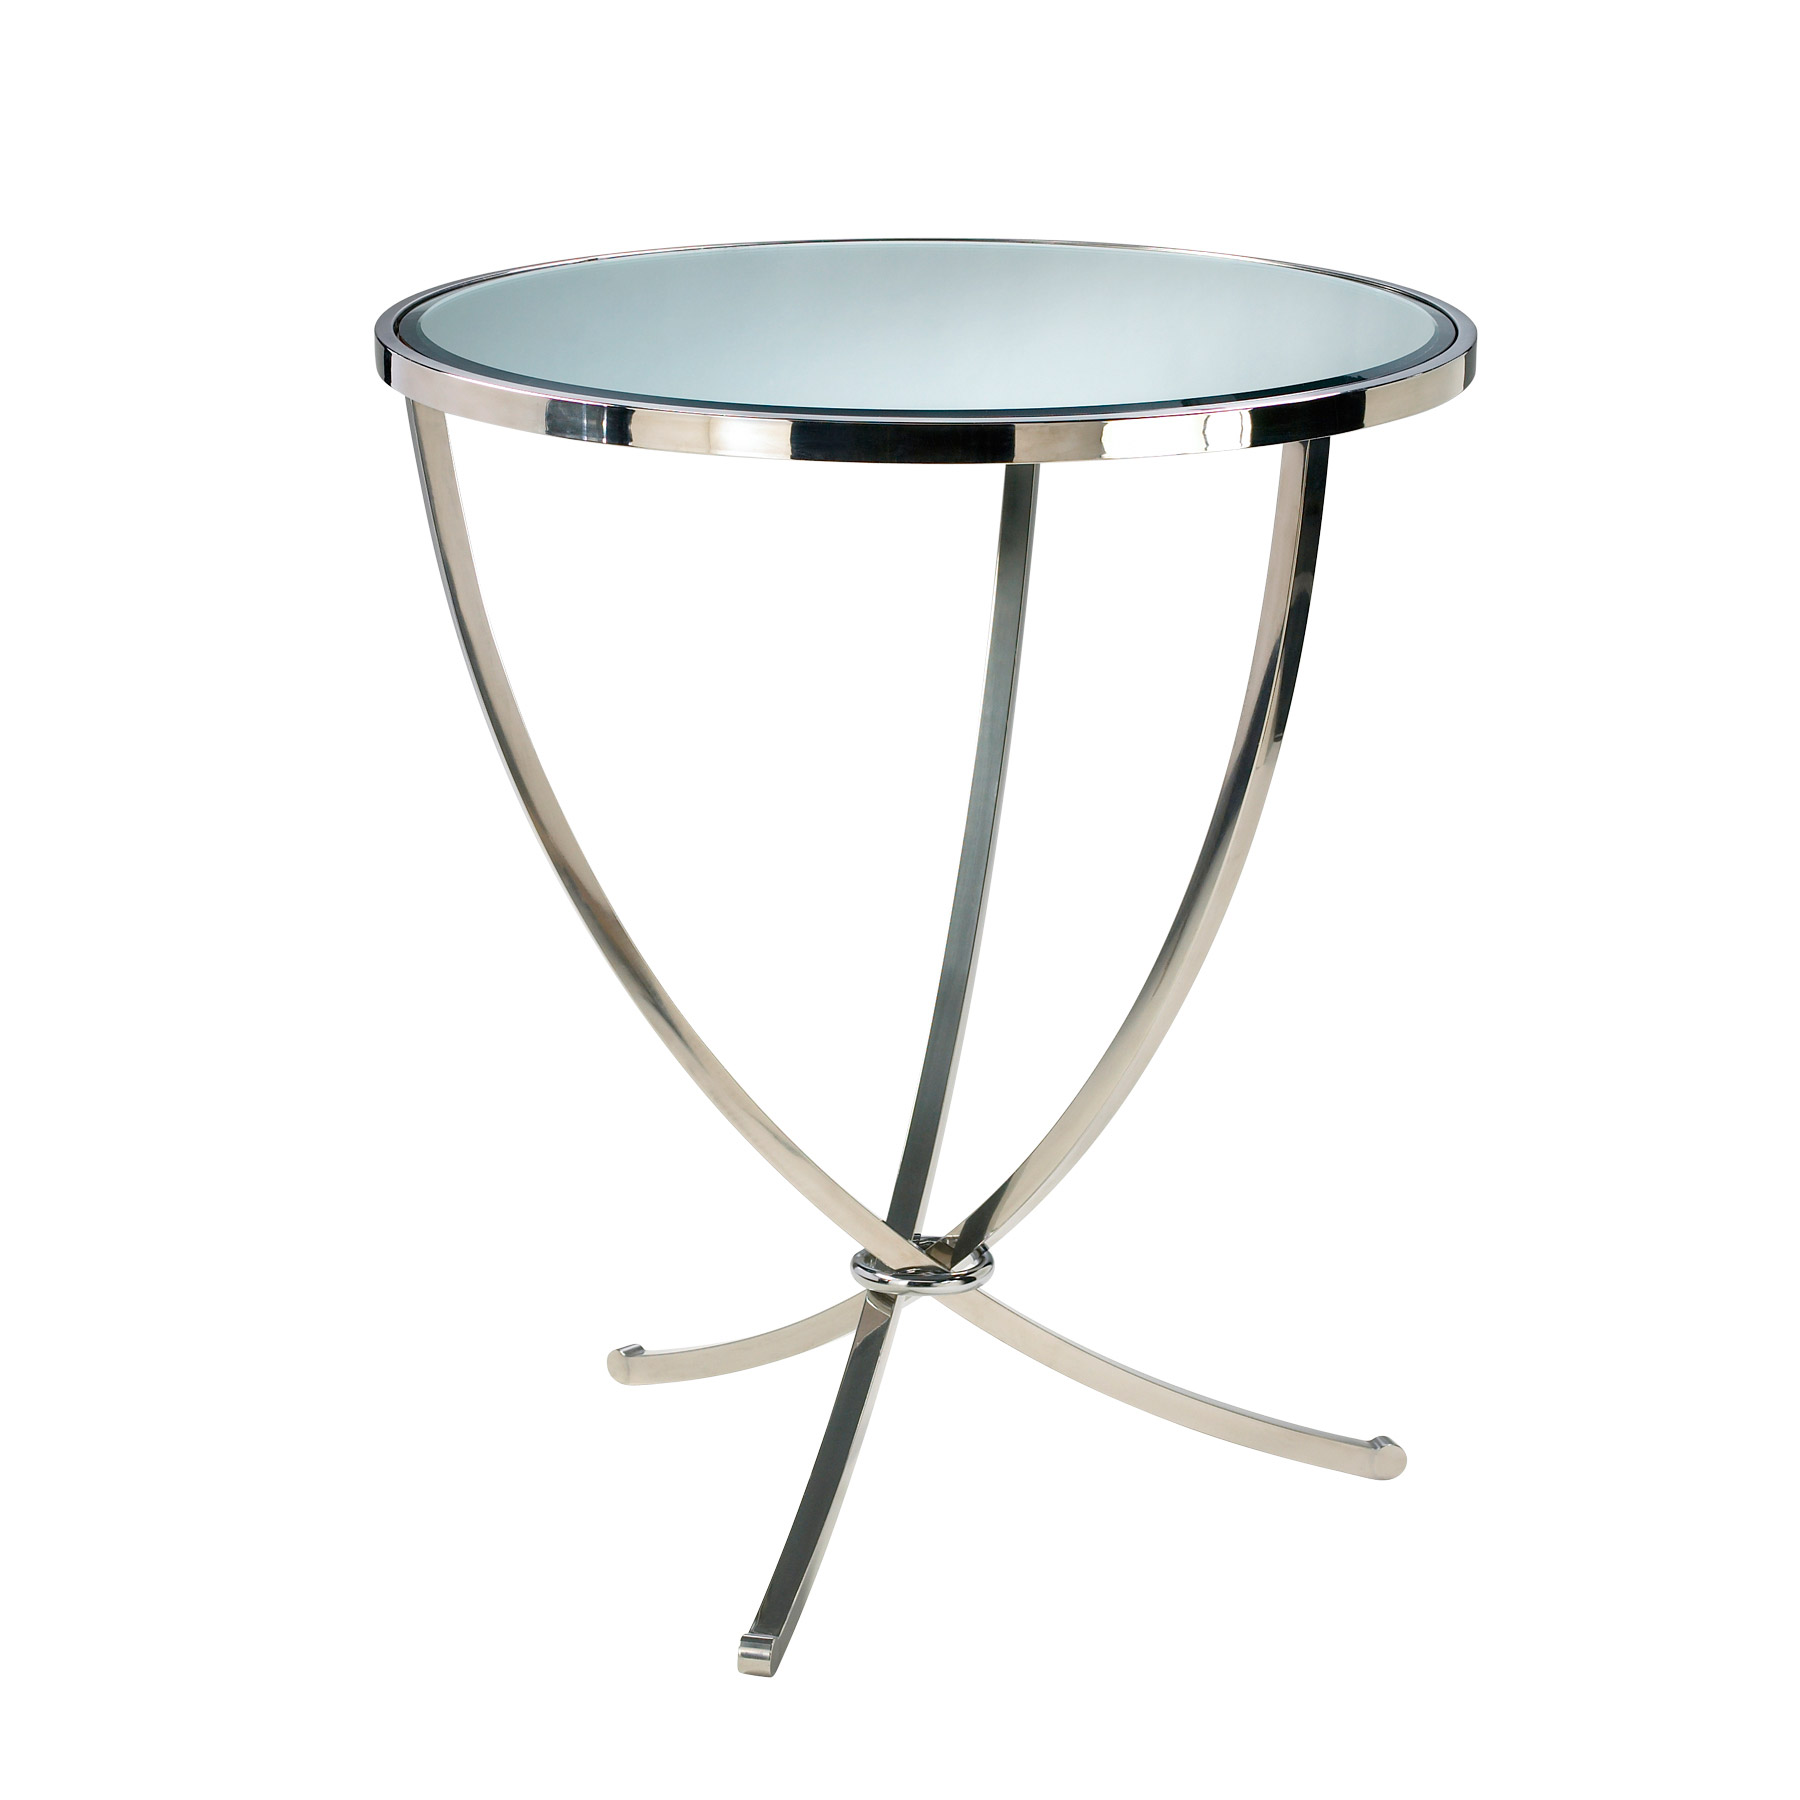 cyan design steel nuovo foyer accent table littman bros lighting tap expand inch furniture legs matching nightstands big modern coffee tables ikea small and chairs quilted runners